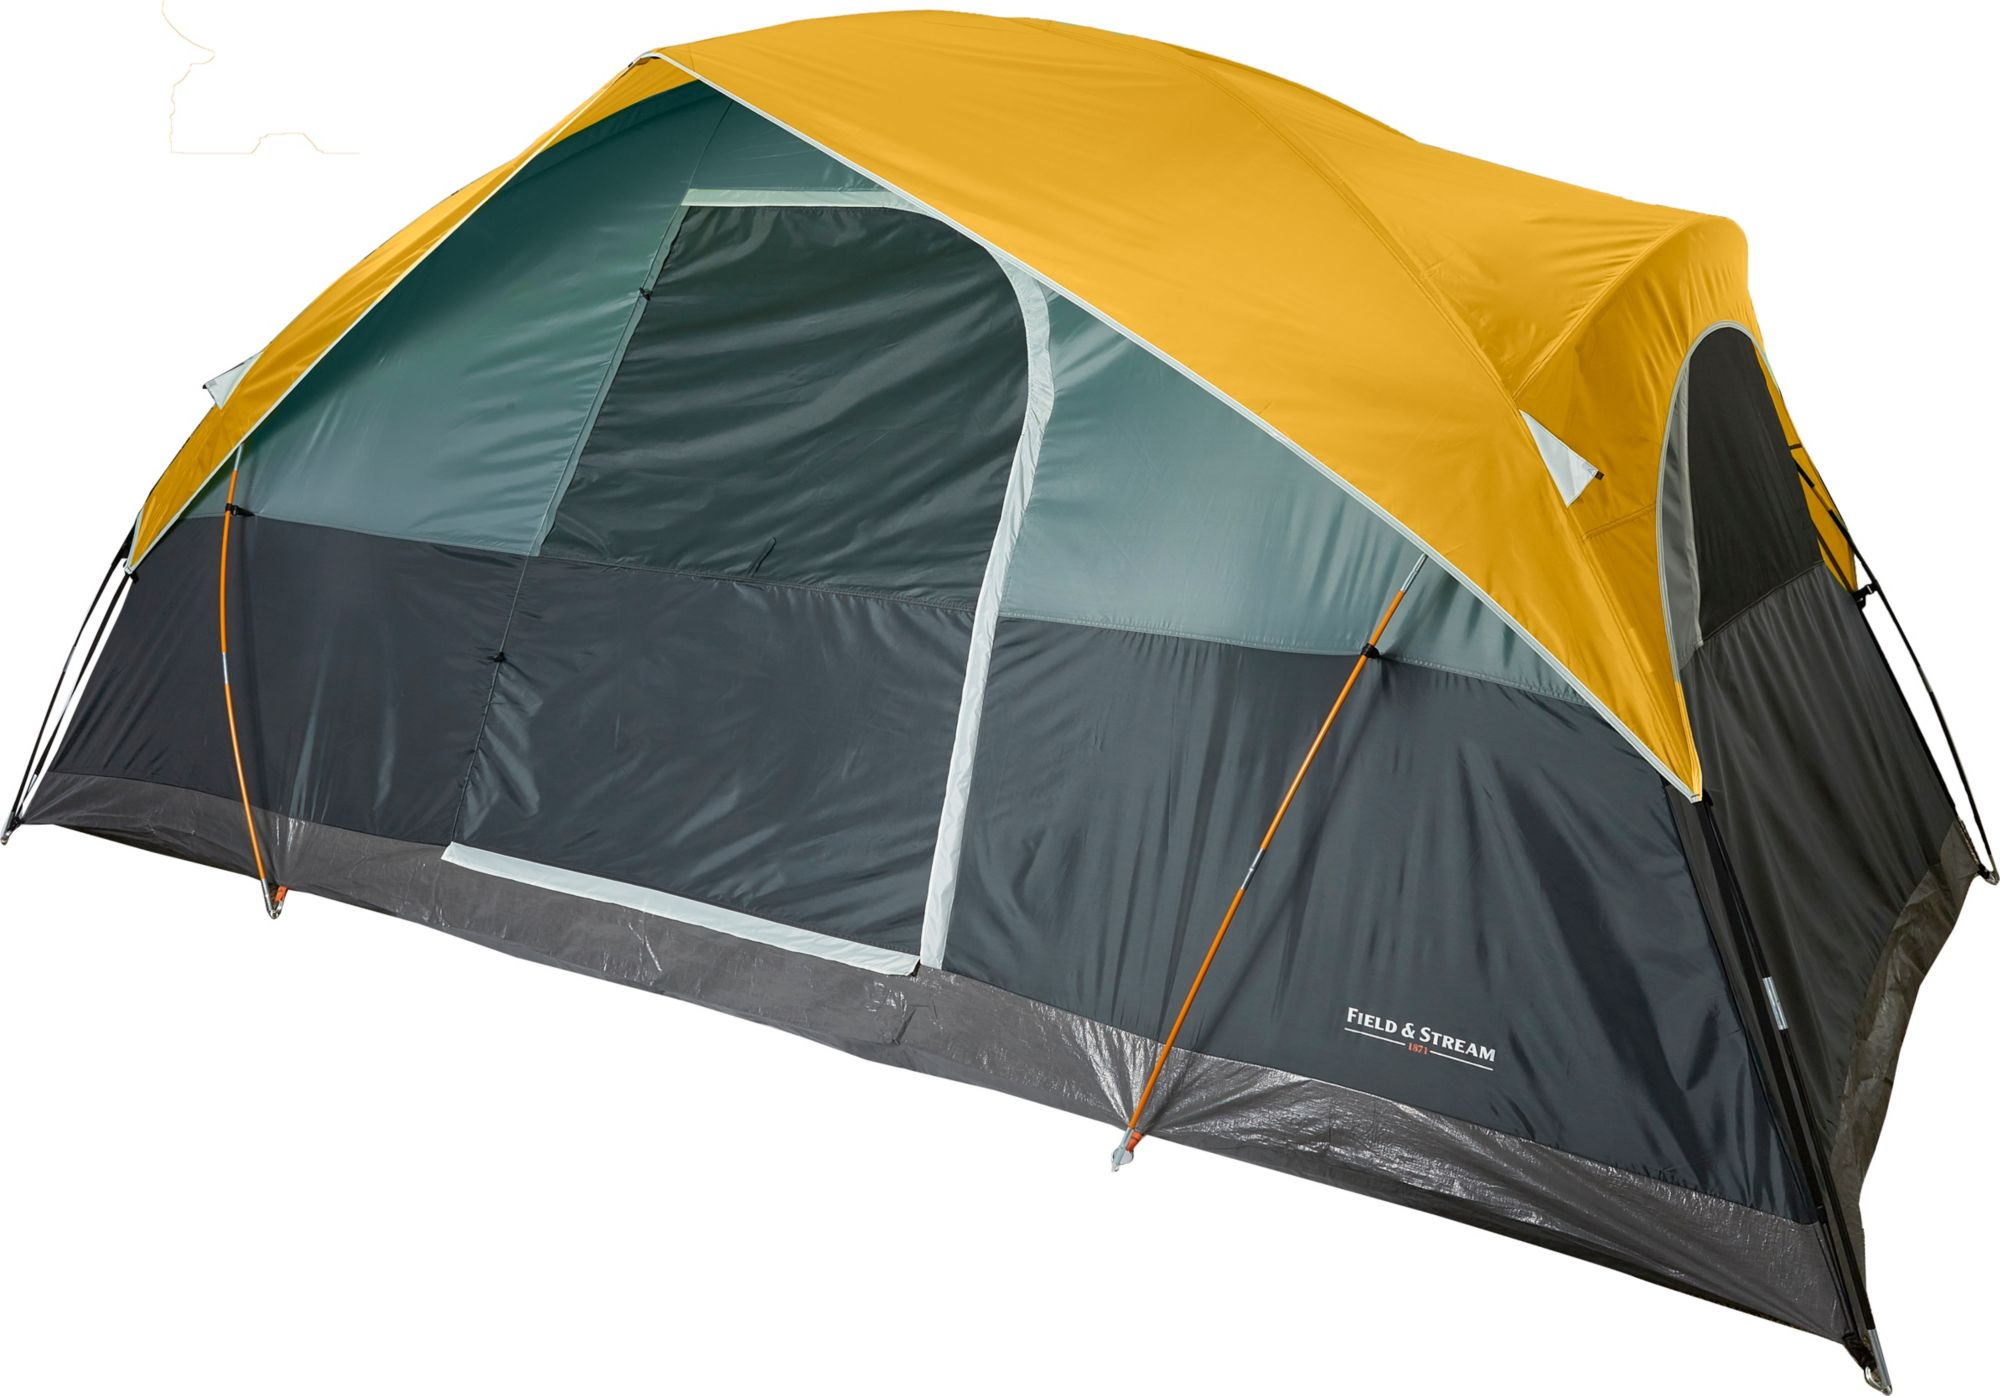 Field u0026 Stream Quad 8 Person Recreational Dome Tent  sc 1 st  Field u0026 Stream & Camping Tents - Dome Family u0026 Backyard | Field u0026 Stream